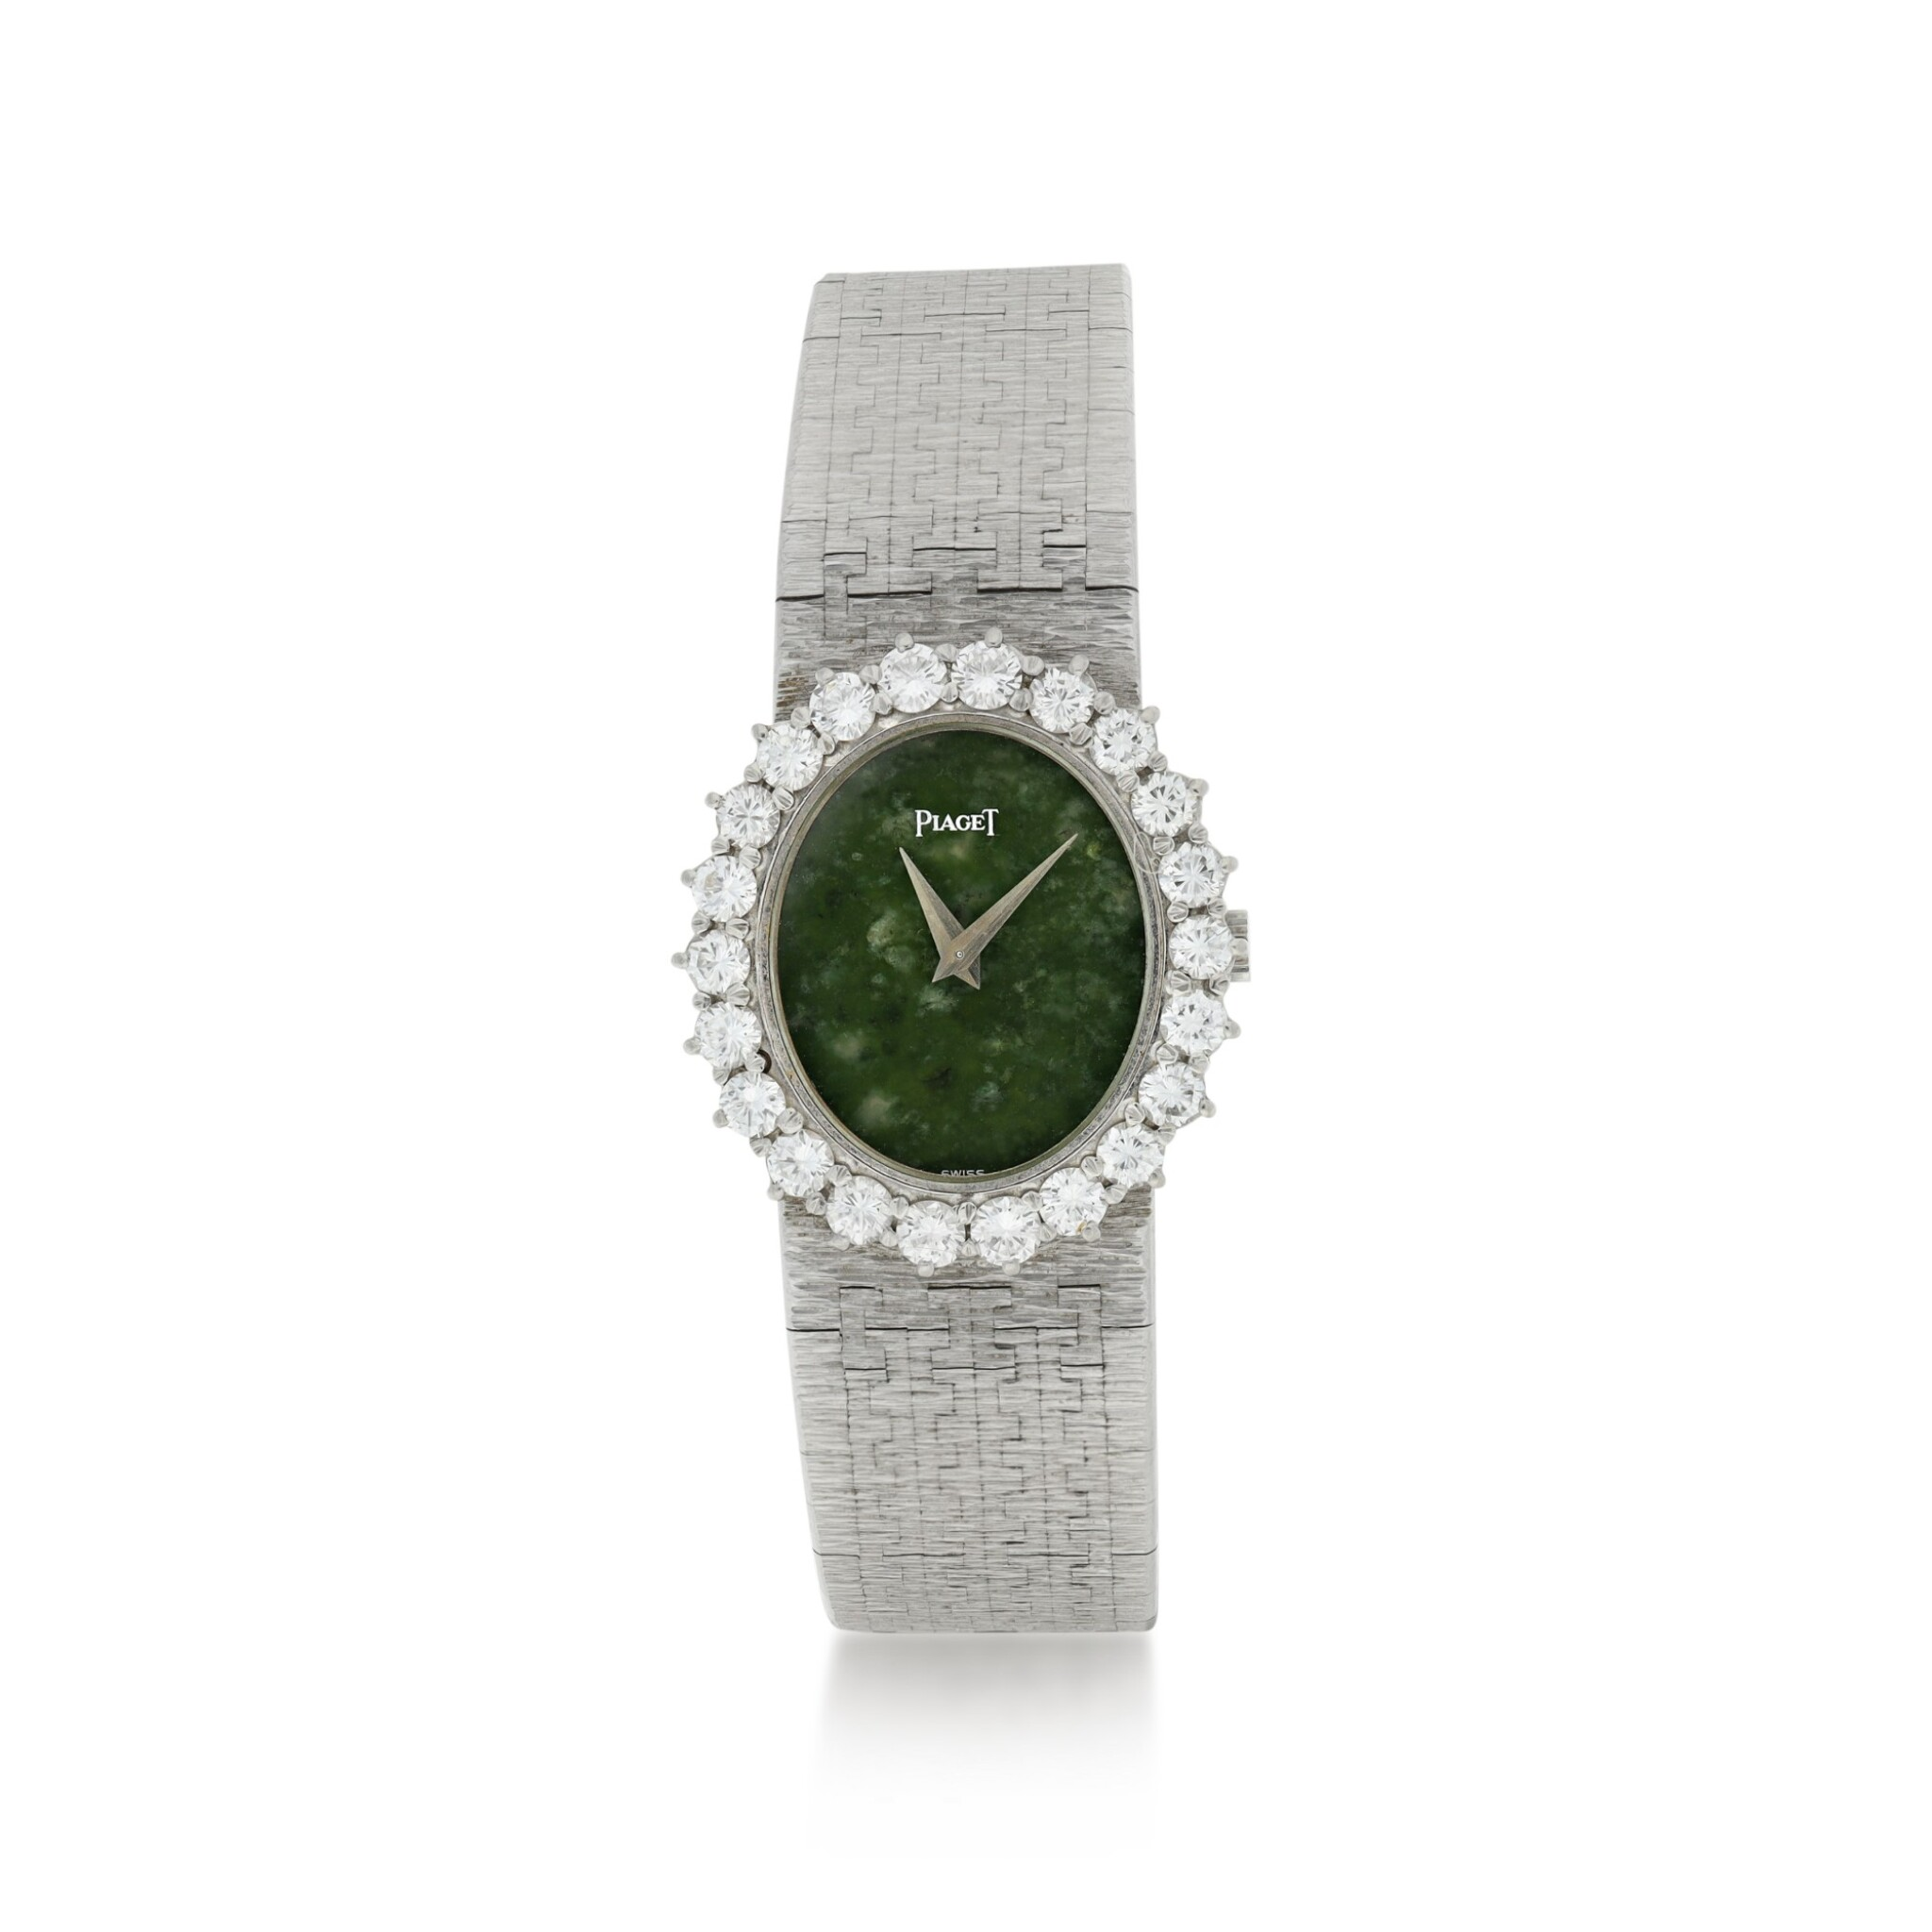 View full screen - View 1 of Lot 63. PIAGET   REFERENCE 9338 A 6  A WHITE GOLD AND DIAMOND-SET BRACELET WATCH WITH JADE DIAL, CIRCA 1985.